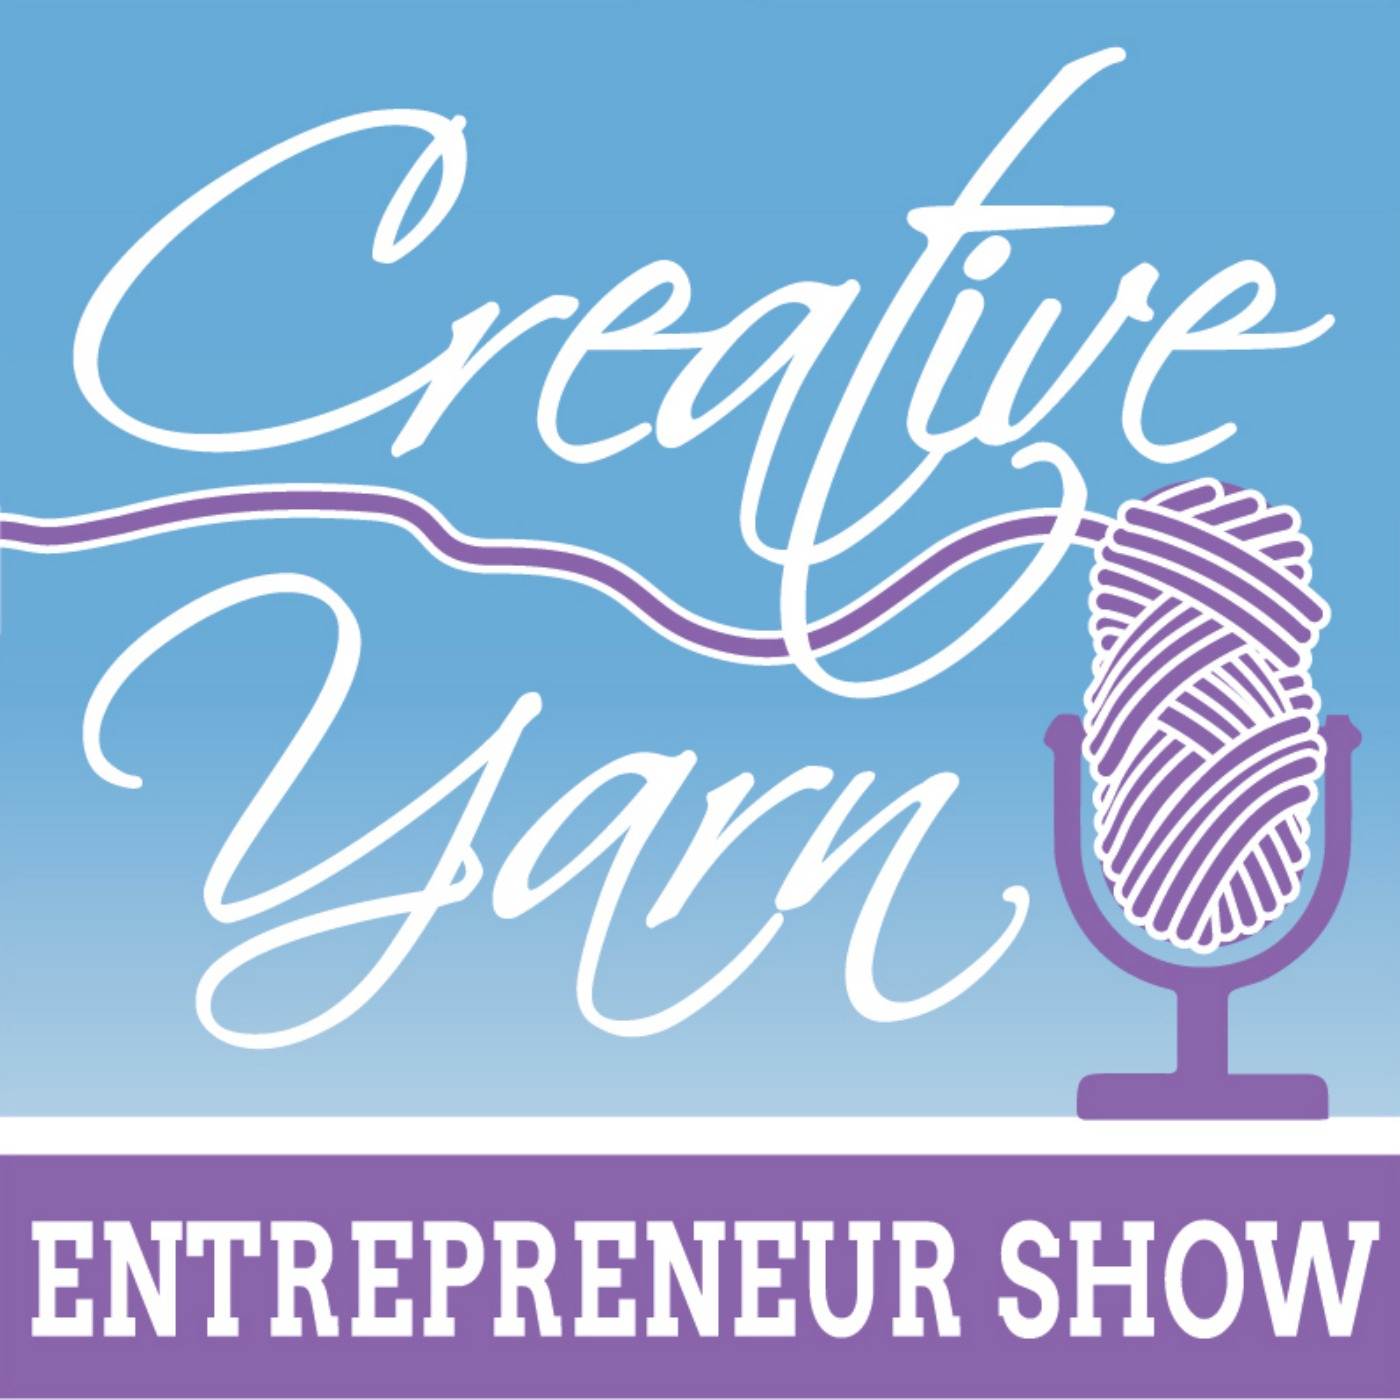 Bonus Episode: Interview with Knitting Designer, Ashwini Jambhekar - The Creative Yarn Entrepreneur Show